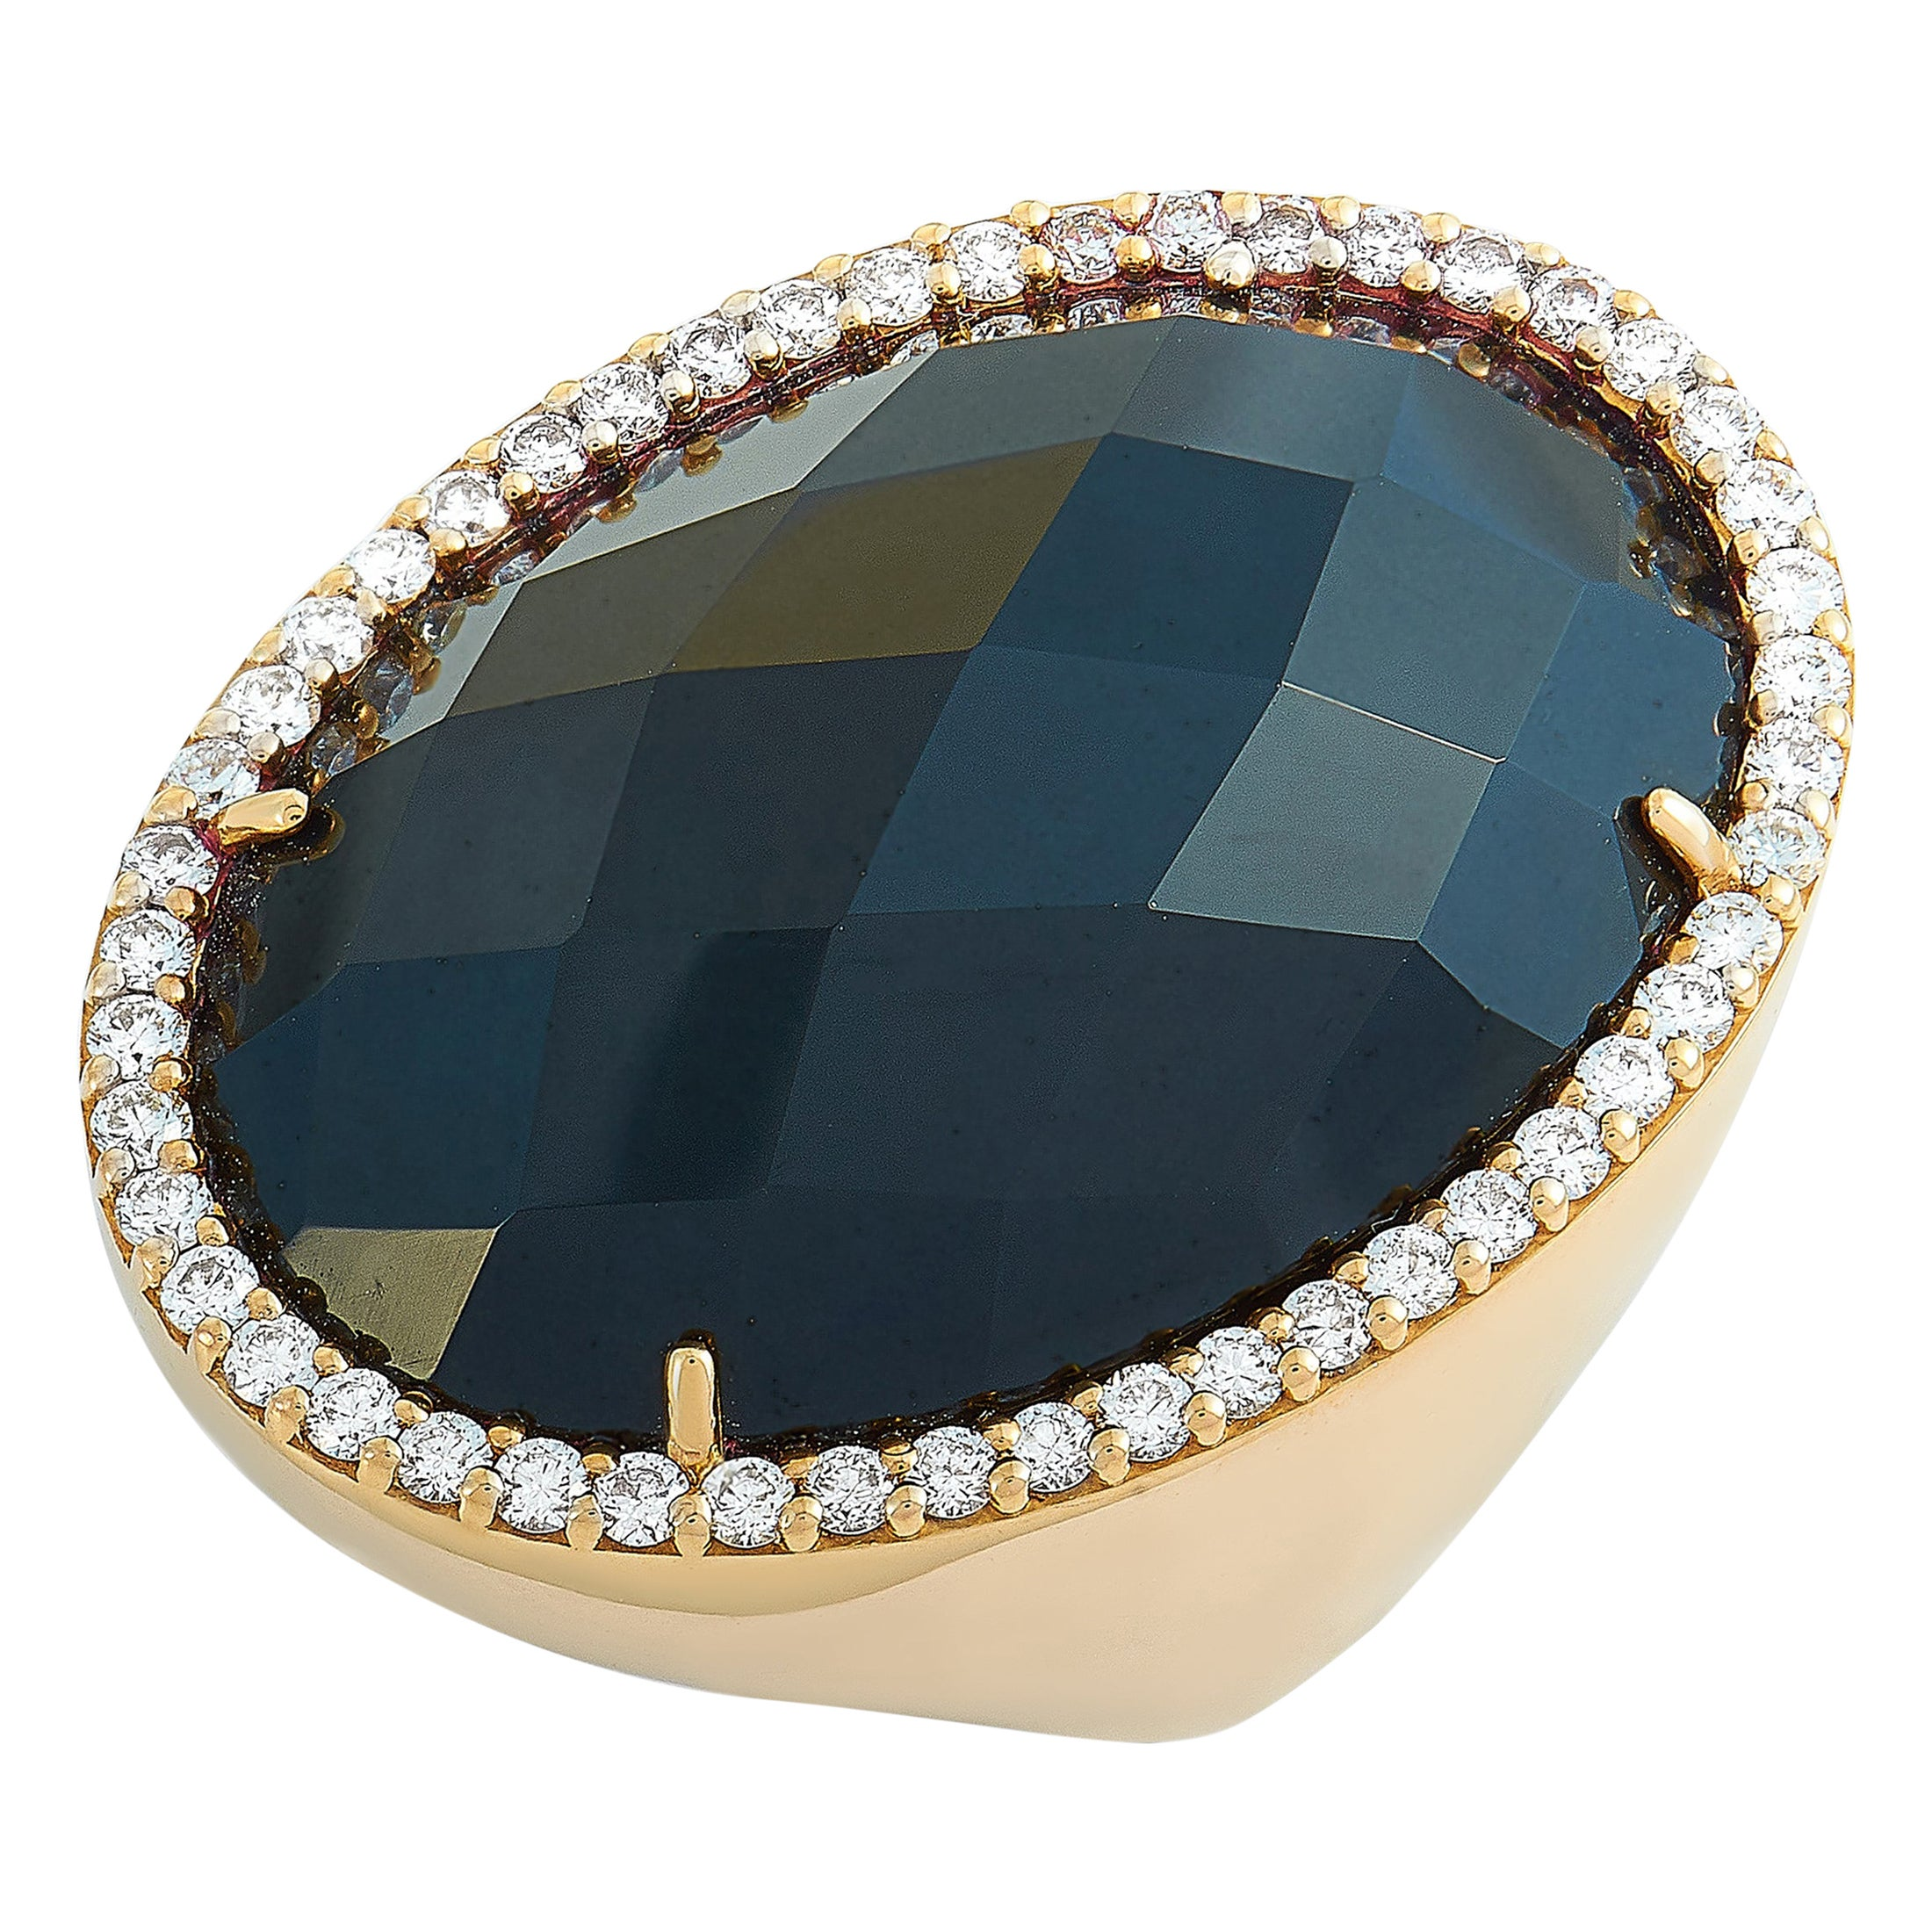 Roberto Coin Cocktail 18 Karat Rose Gold Diamond and Onyx Ring